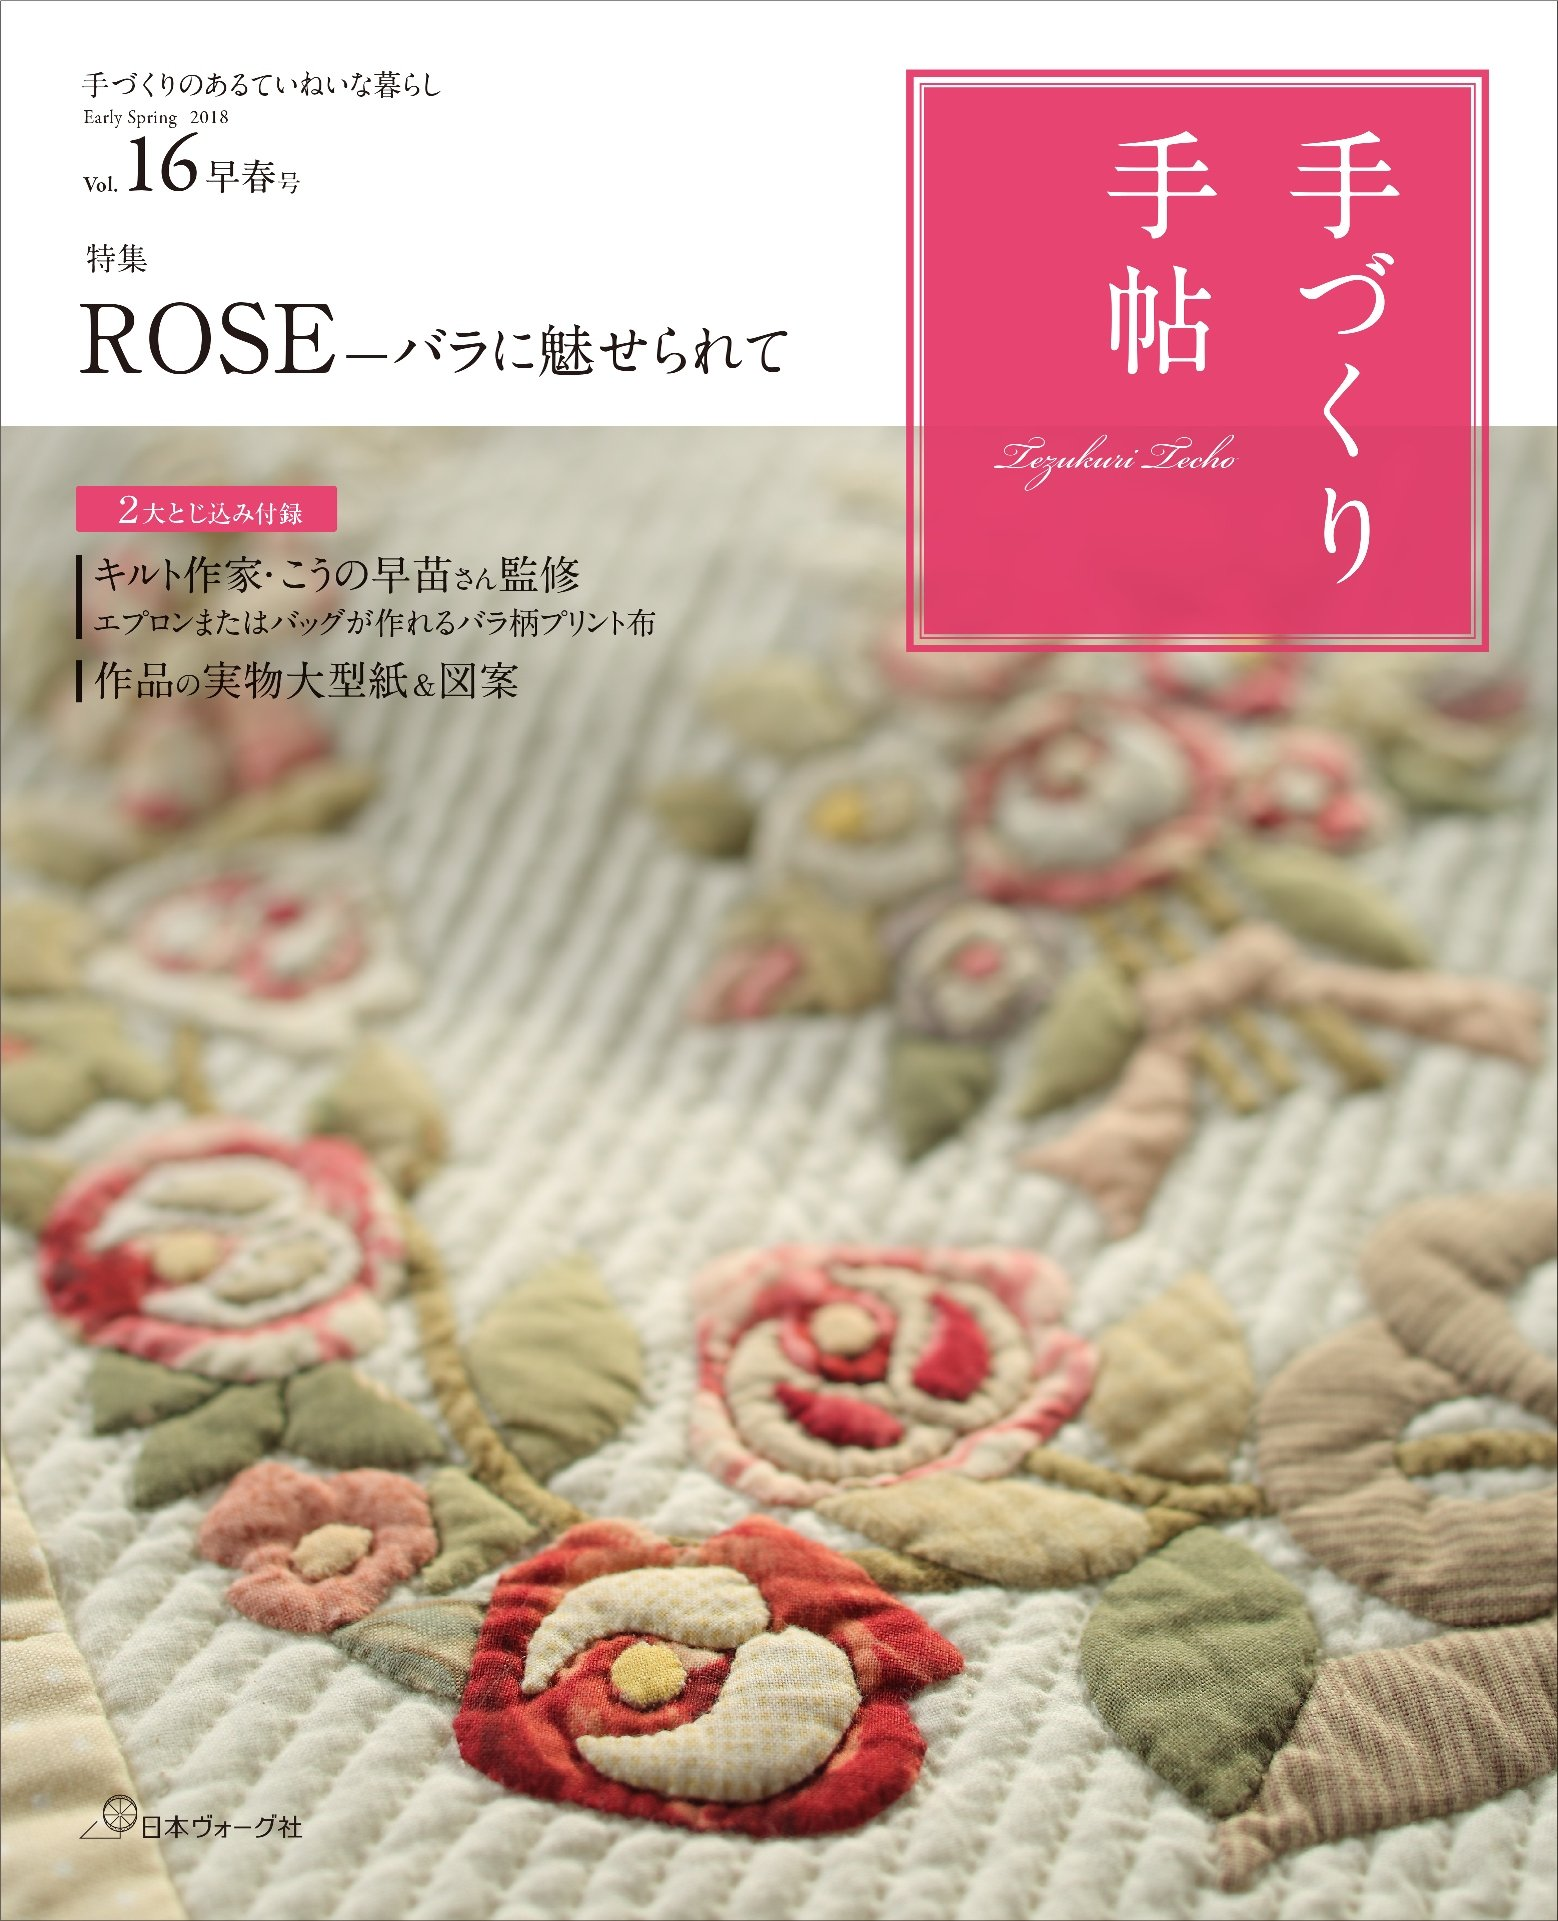 Handmade notebook Vol.16 early spring issue